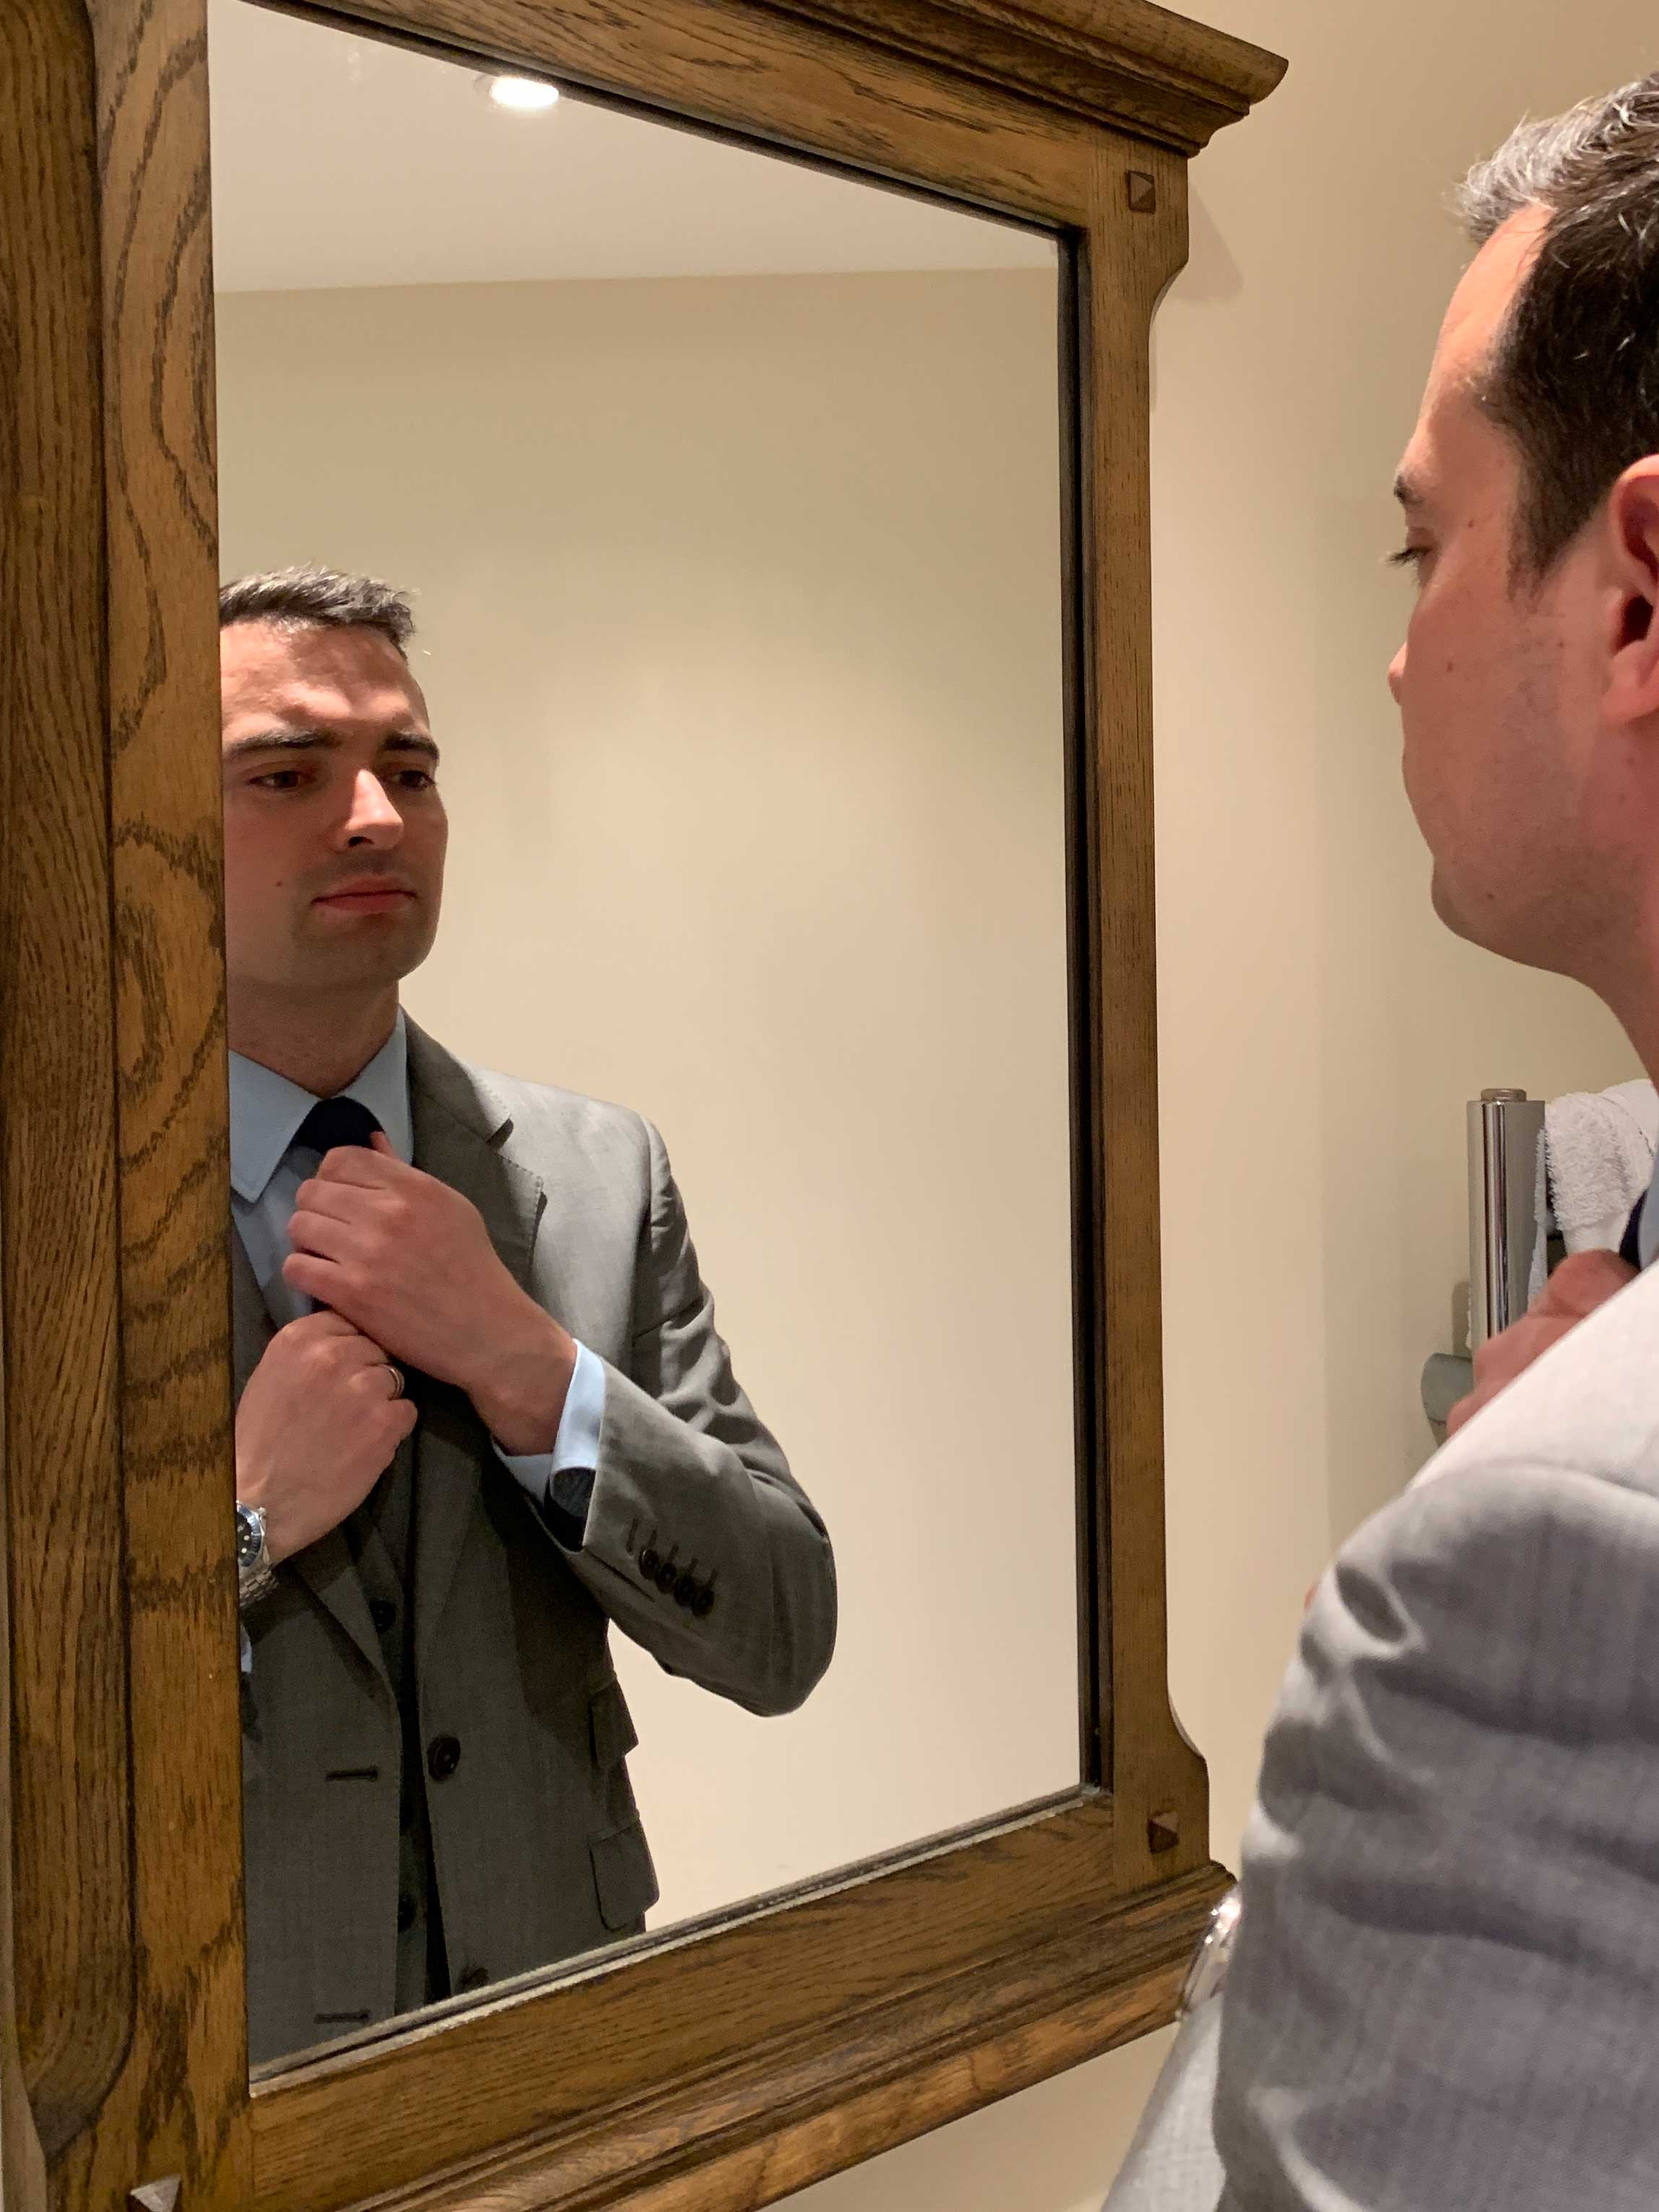 daniel in a suit in the mirror